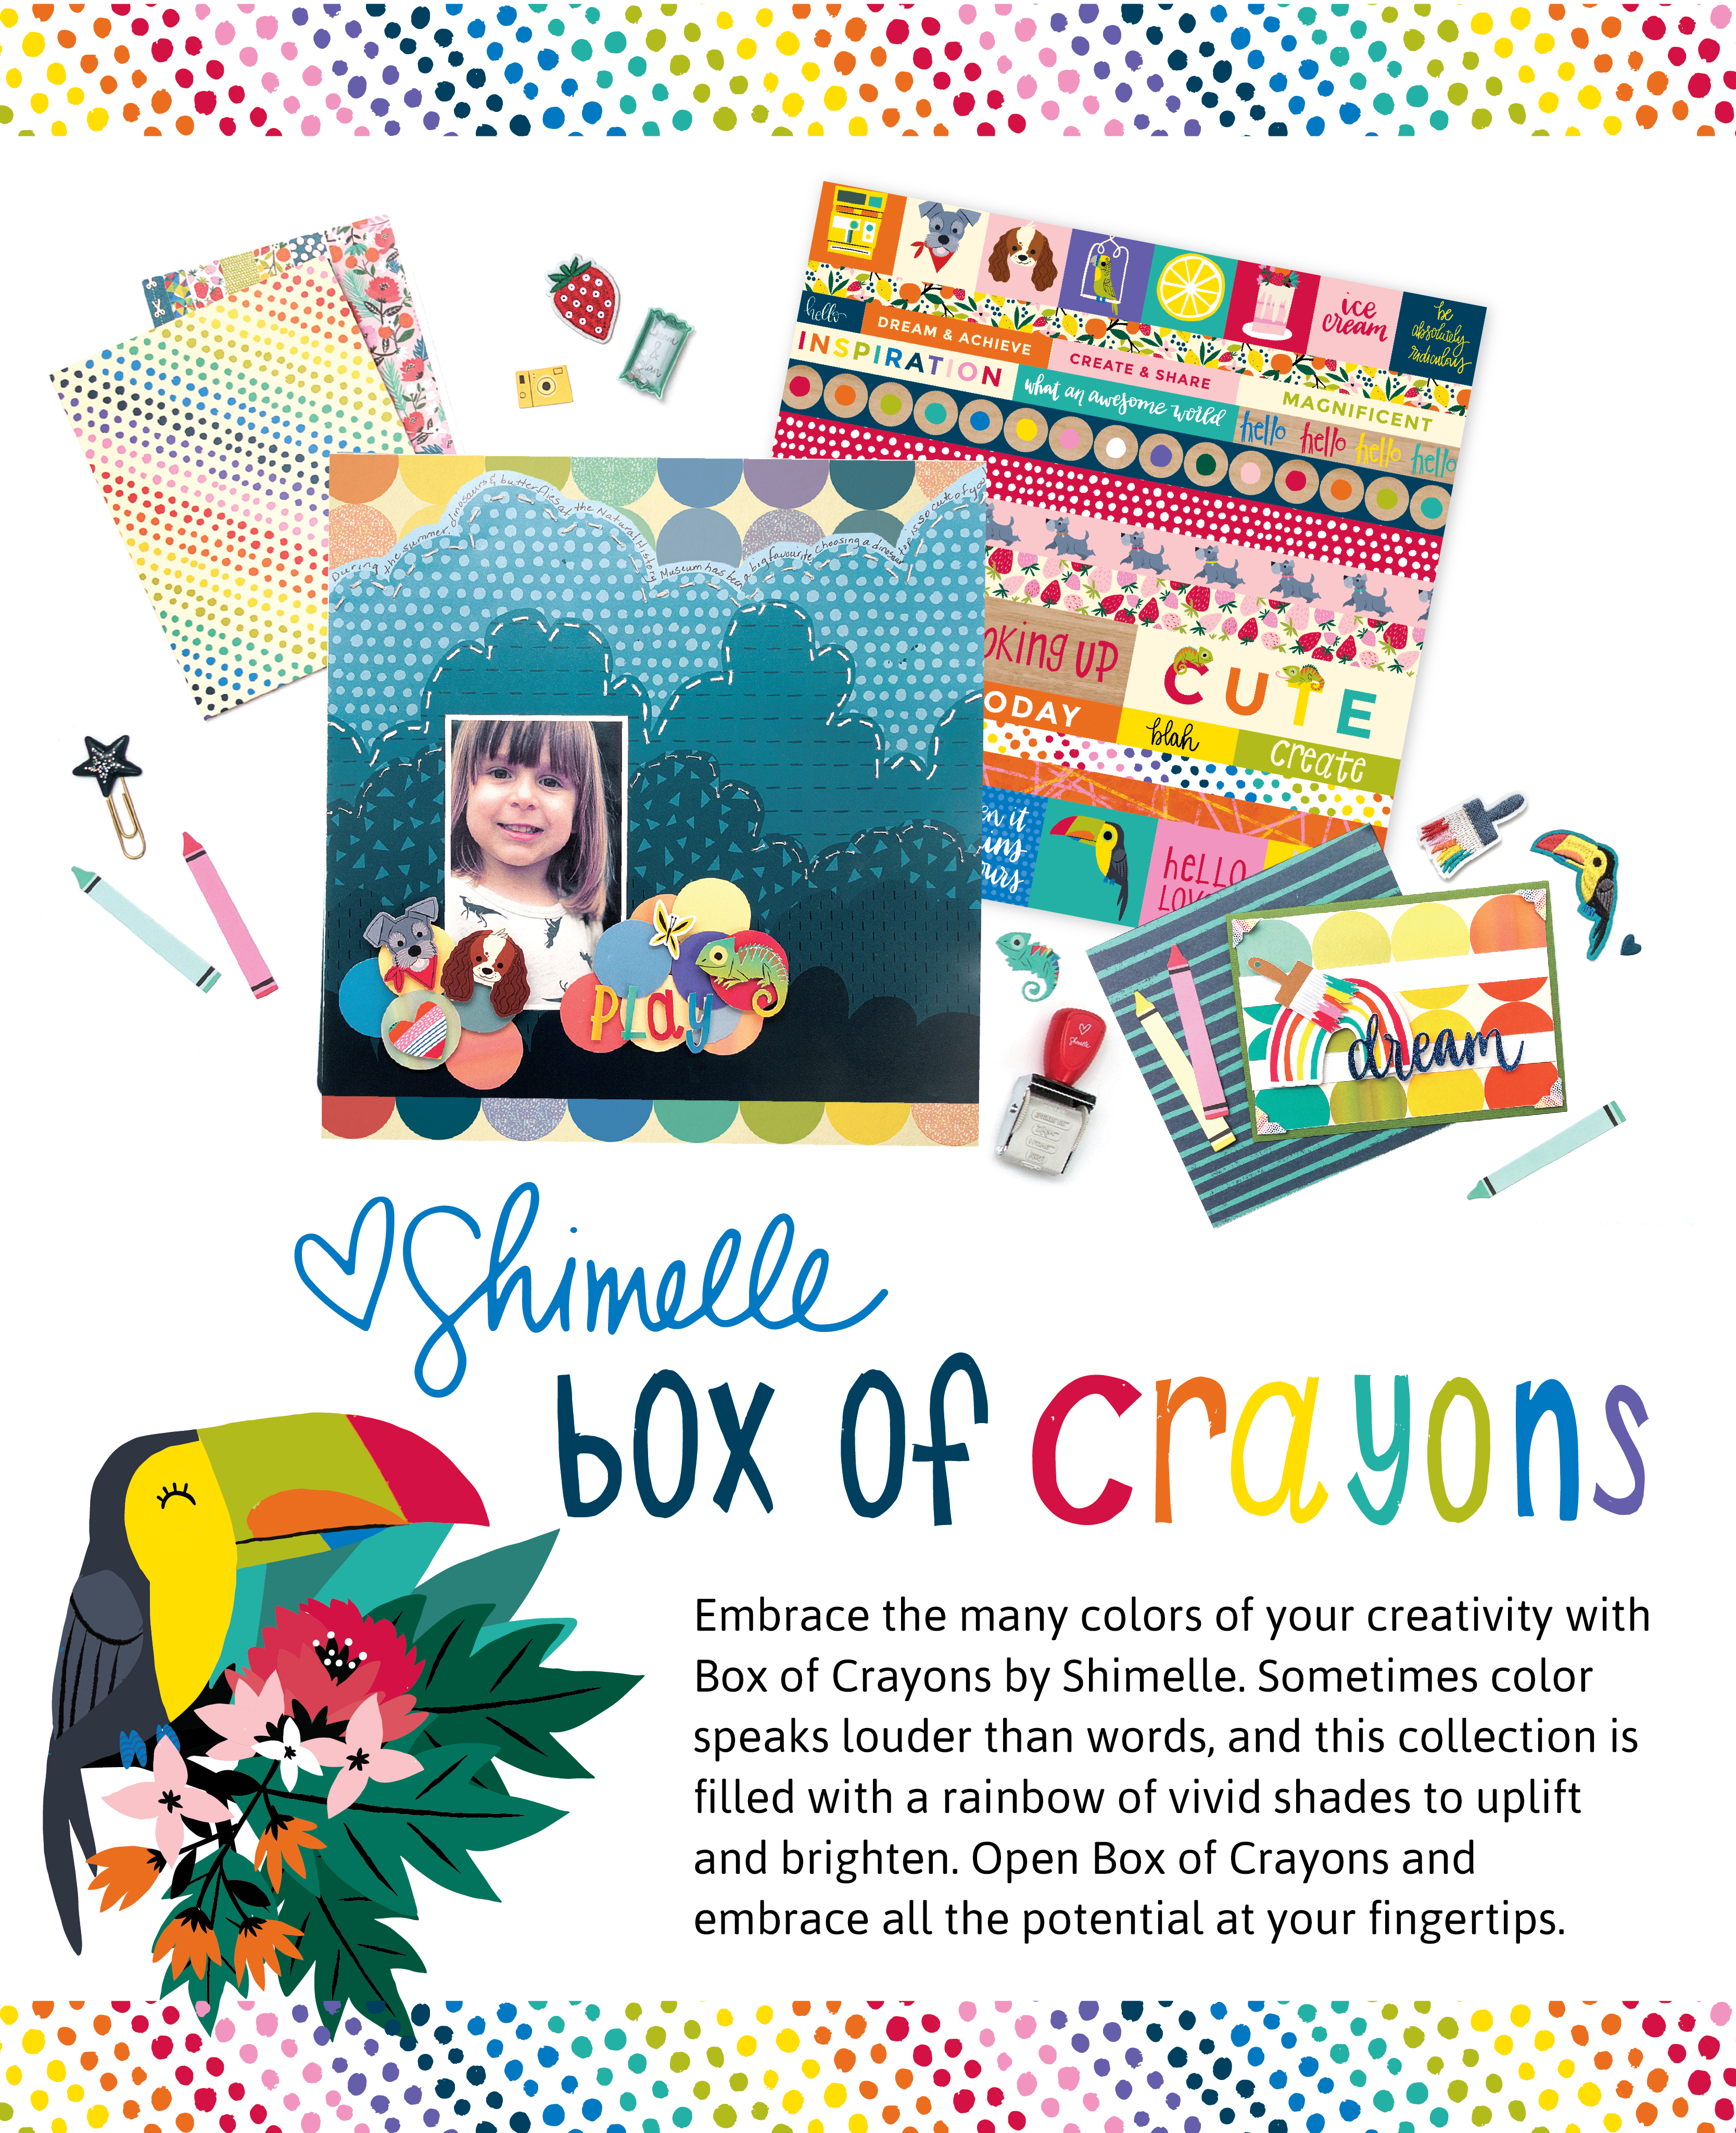 American Crafts Studio Blog Box Of Crayons By Shimelle